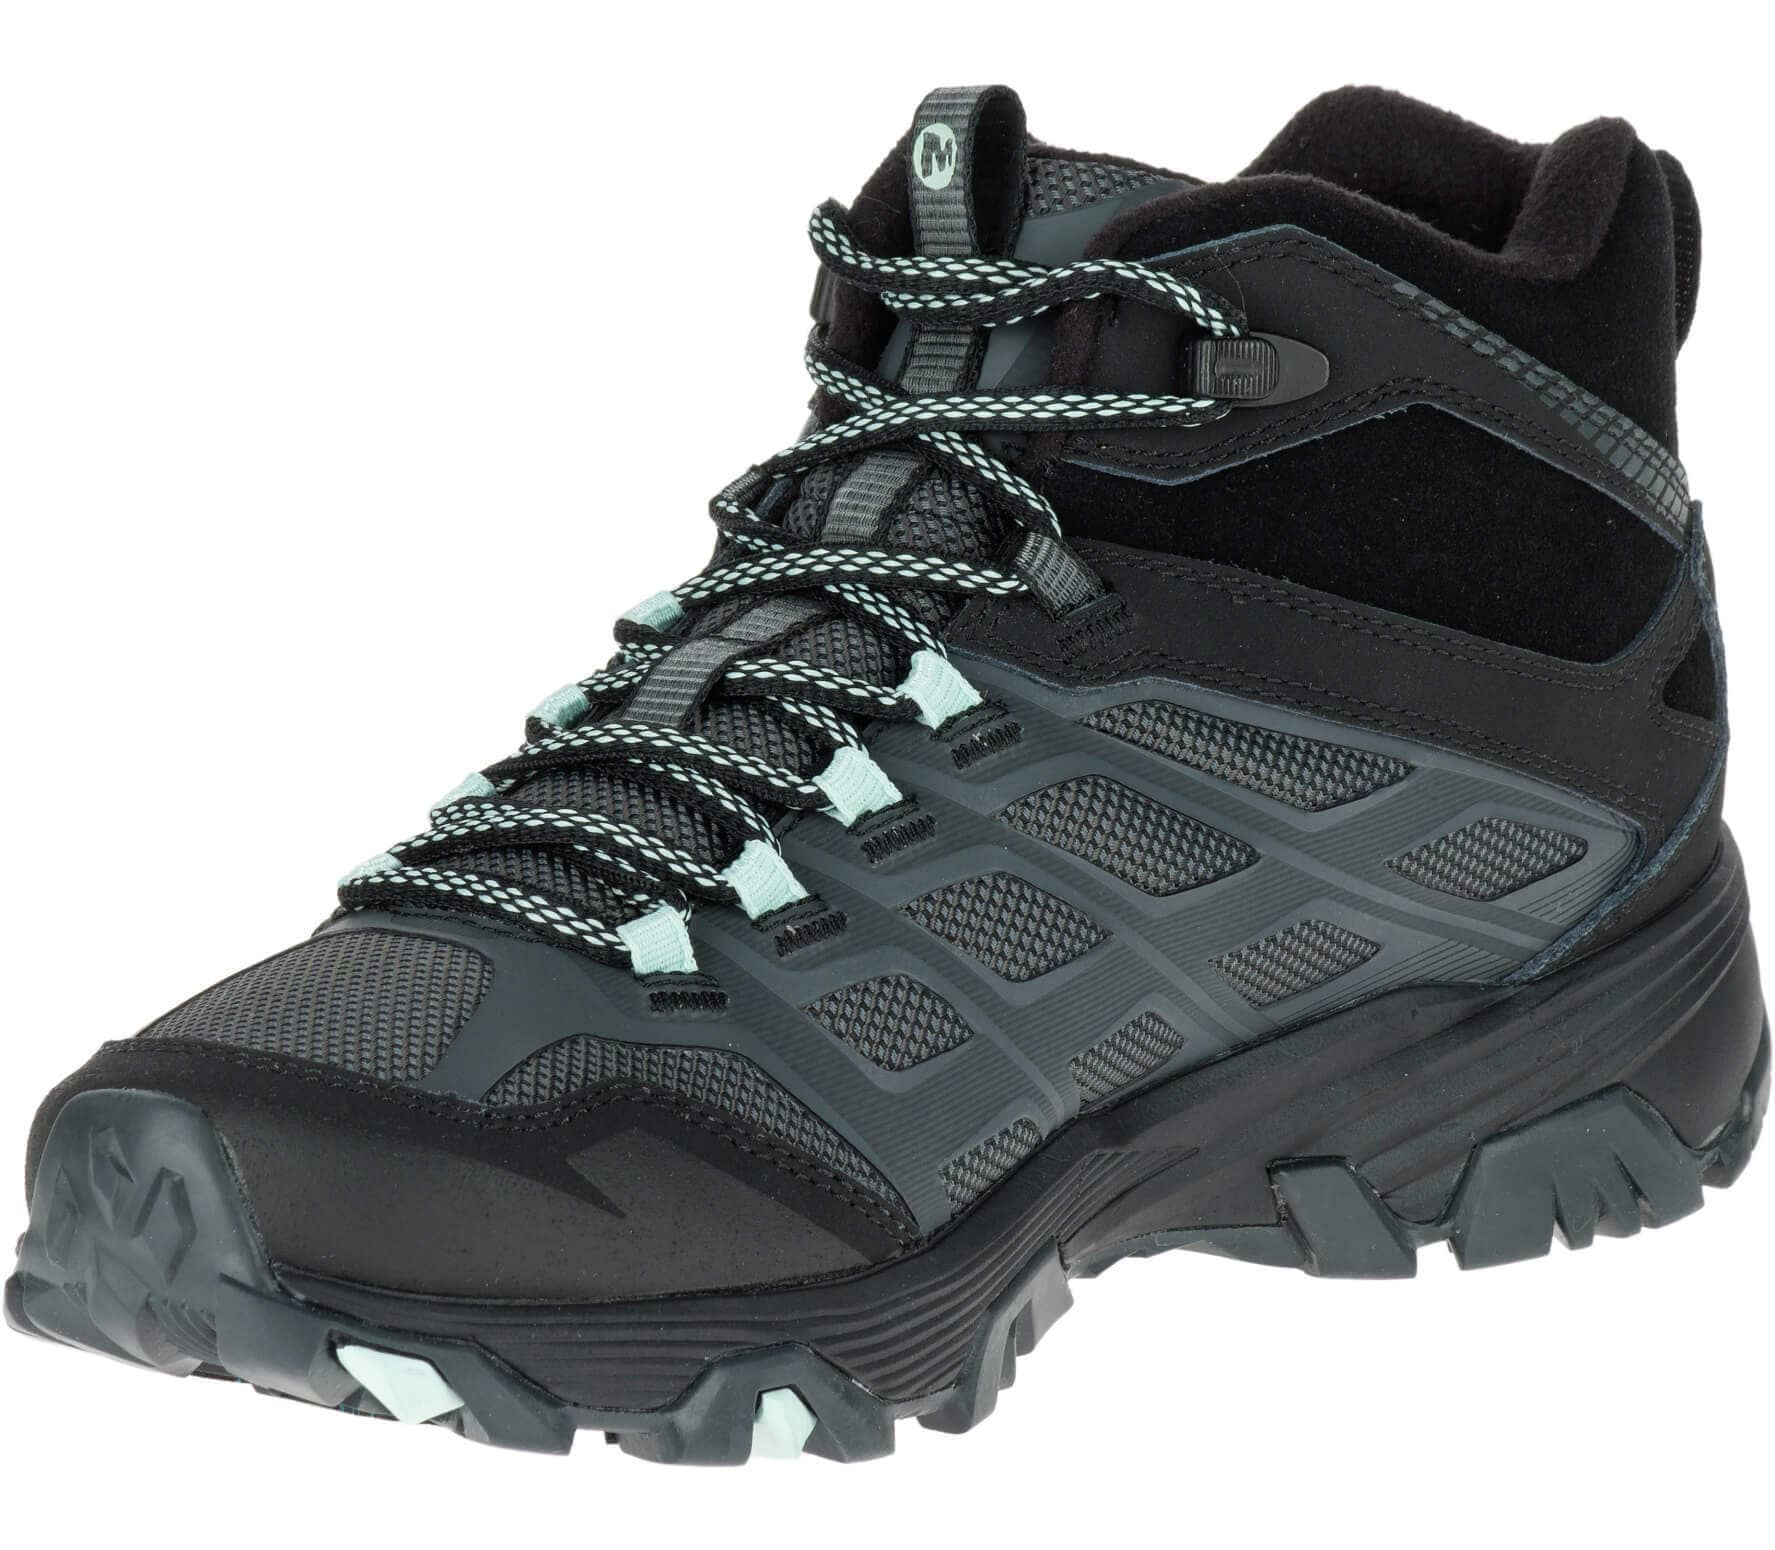 Merrell - Moab FST Ice + Thermo women s winter shoes (grey black ... 086184b81a